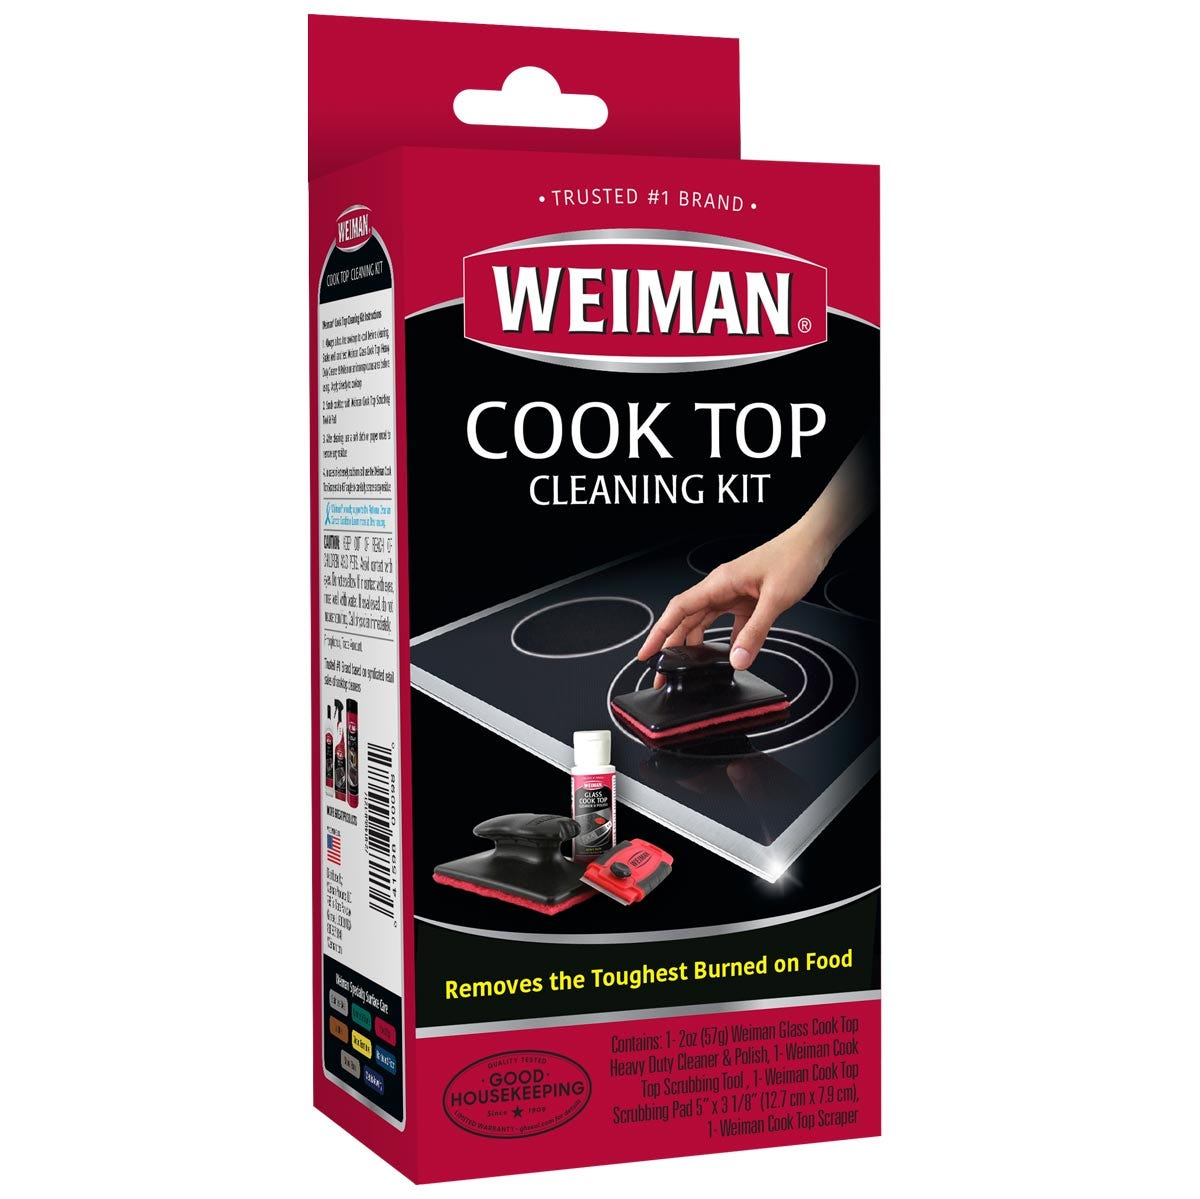 https://googone.com/media/catalog/product/c/o/cooktop-cleaning-kit_front.jpg